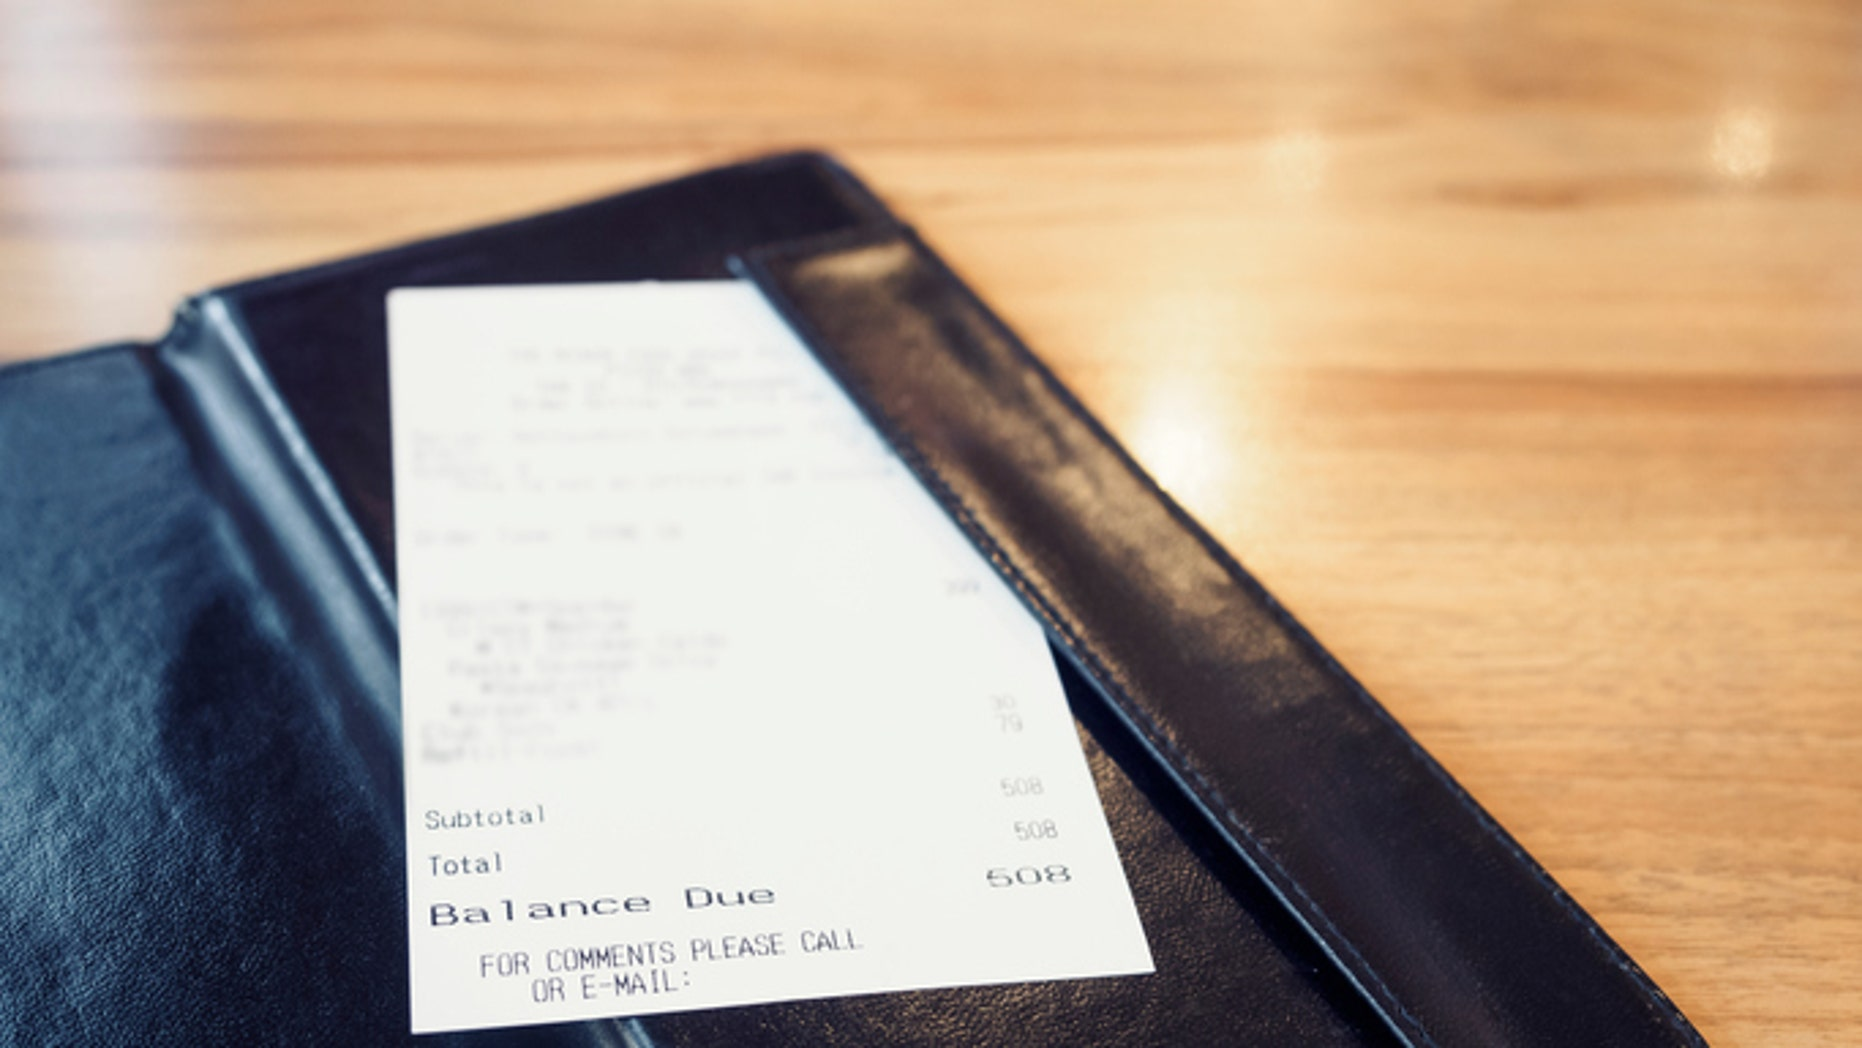 A restaurant in Brooklyn is leaving political notes on receipts.